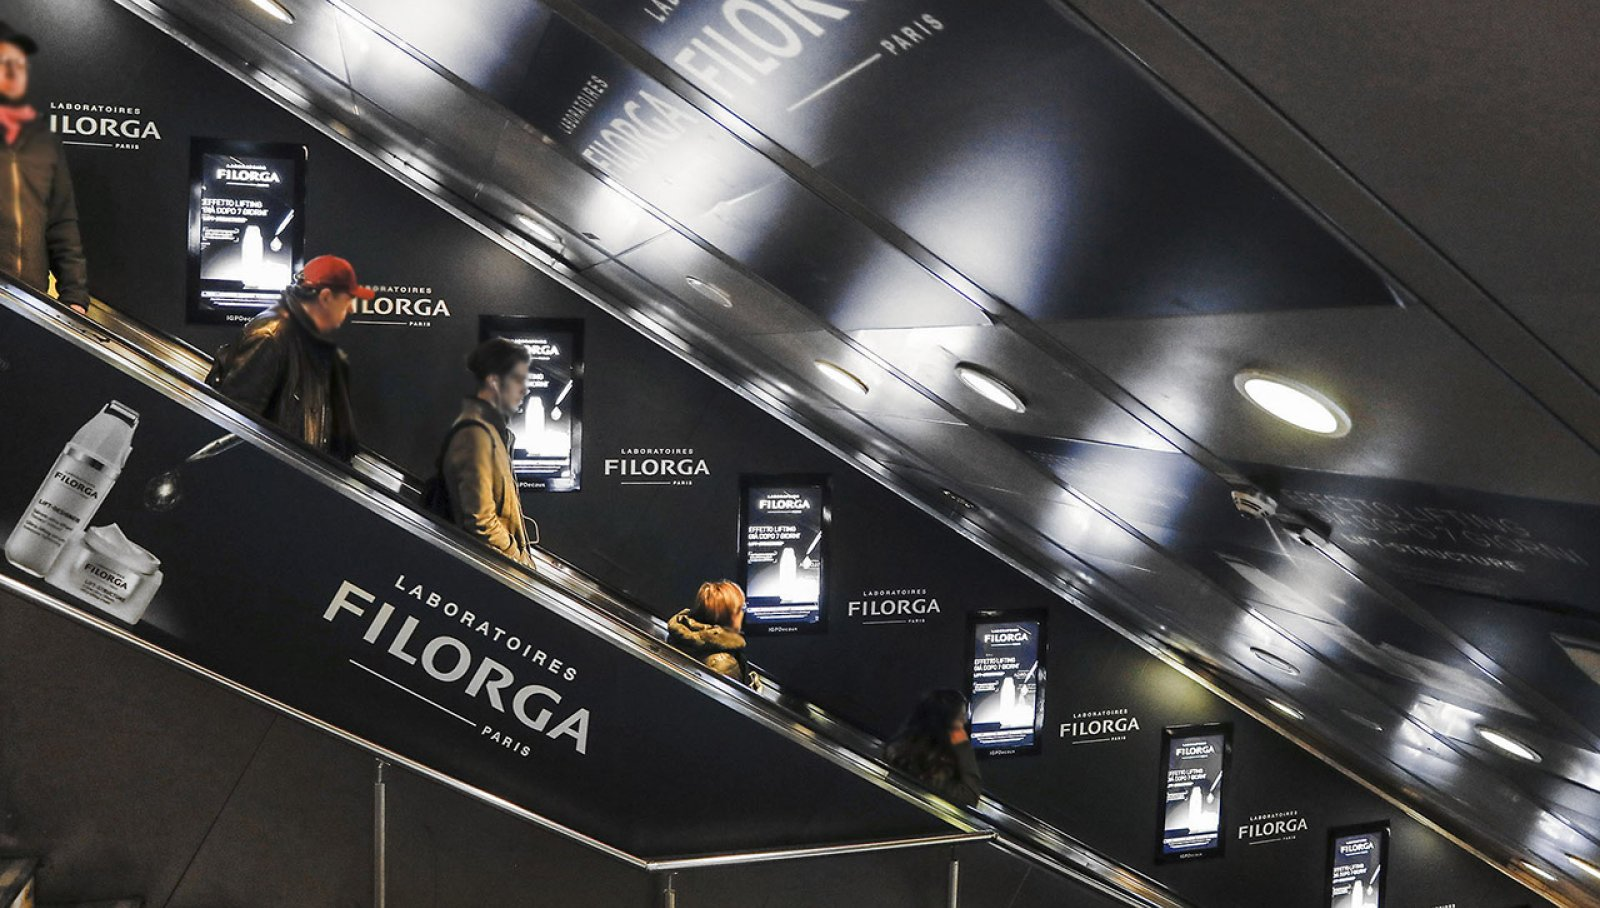 Filorga Digital Escalator TerminiIGPDecaux